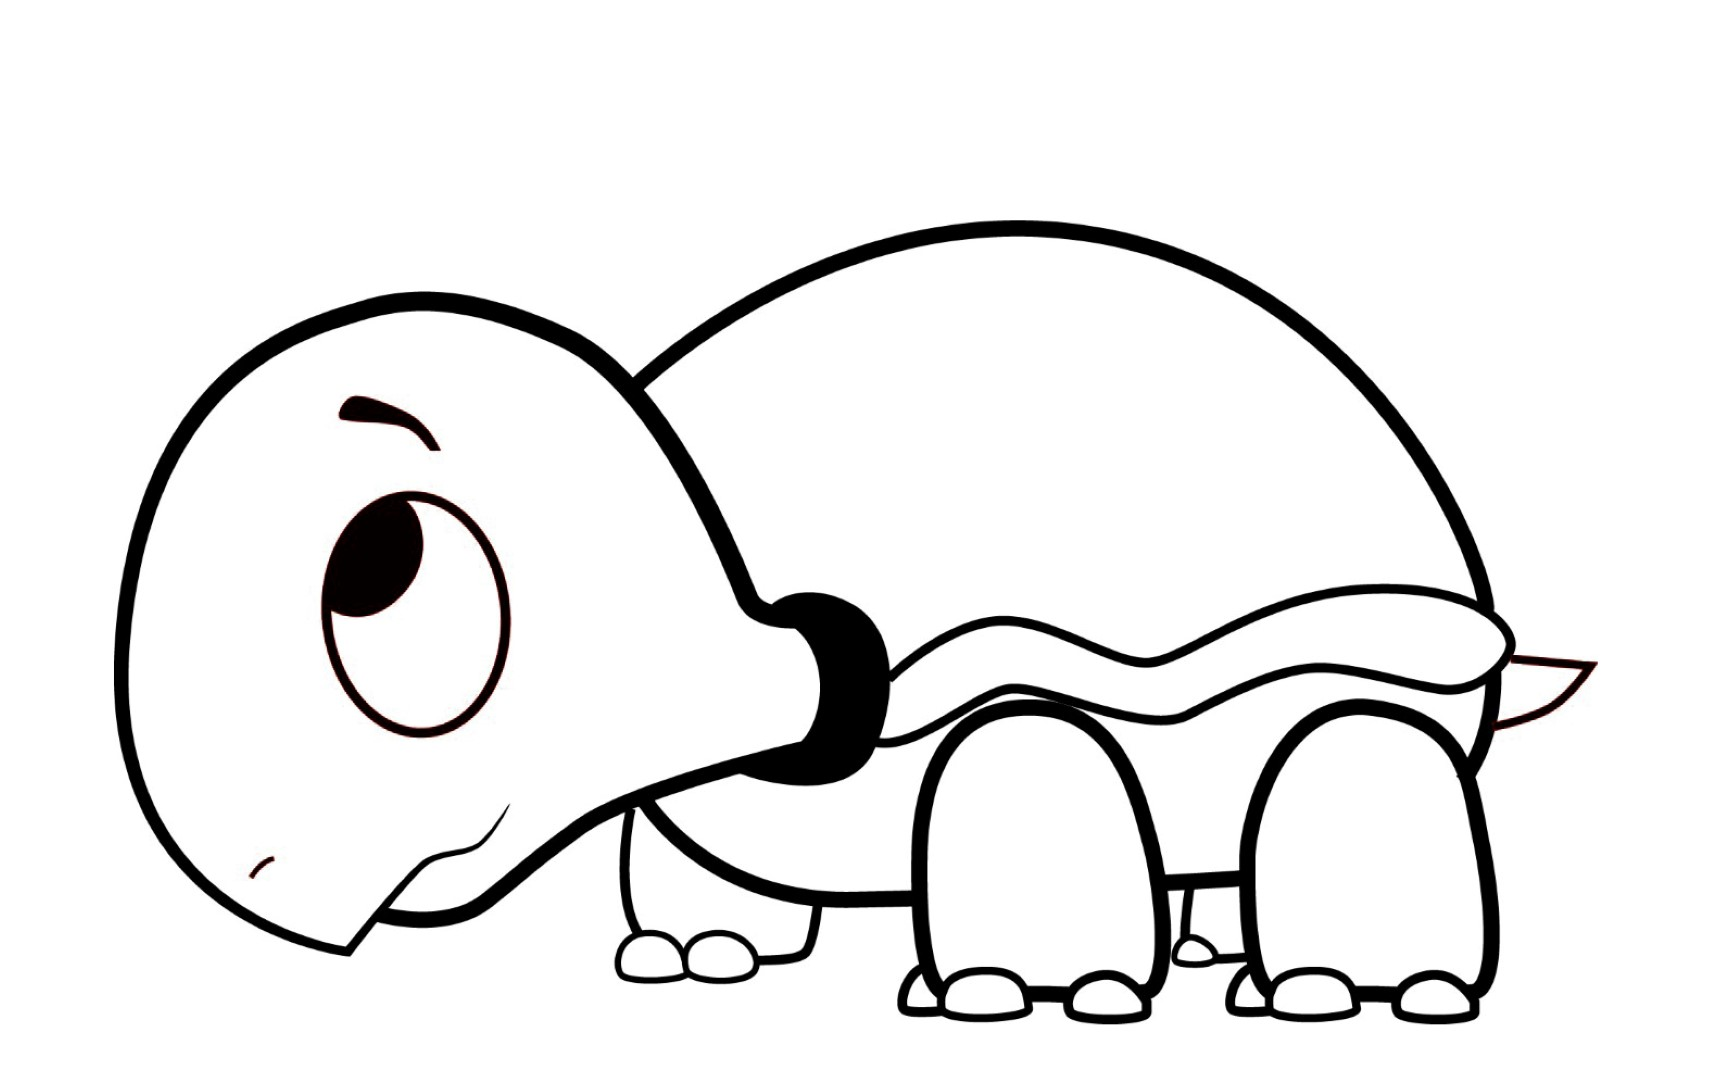 turtle cartoon coloring pages - photo#13